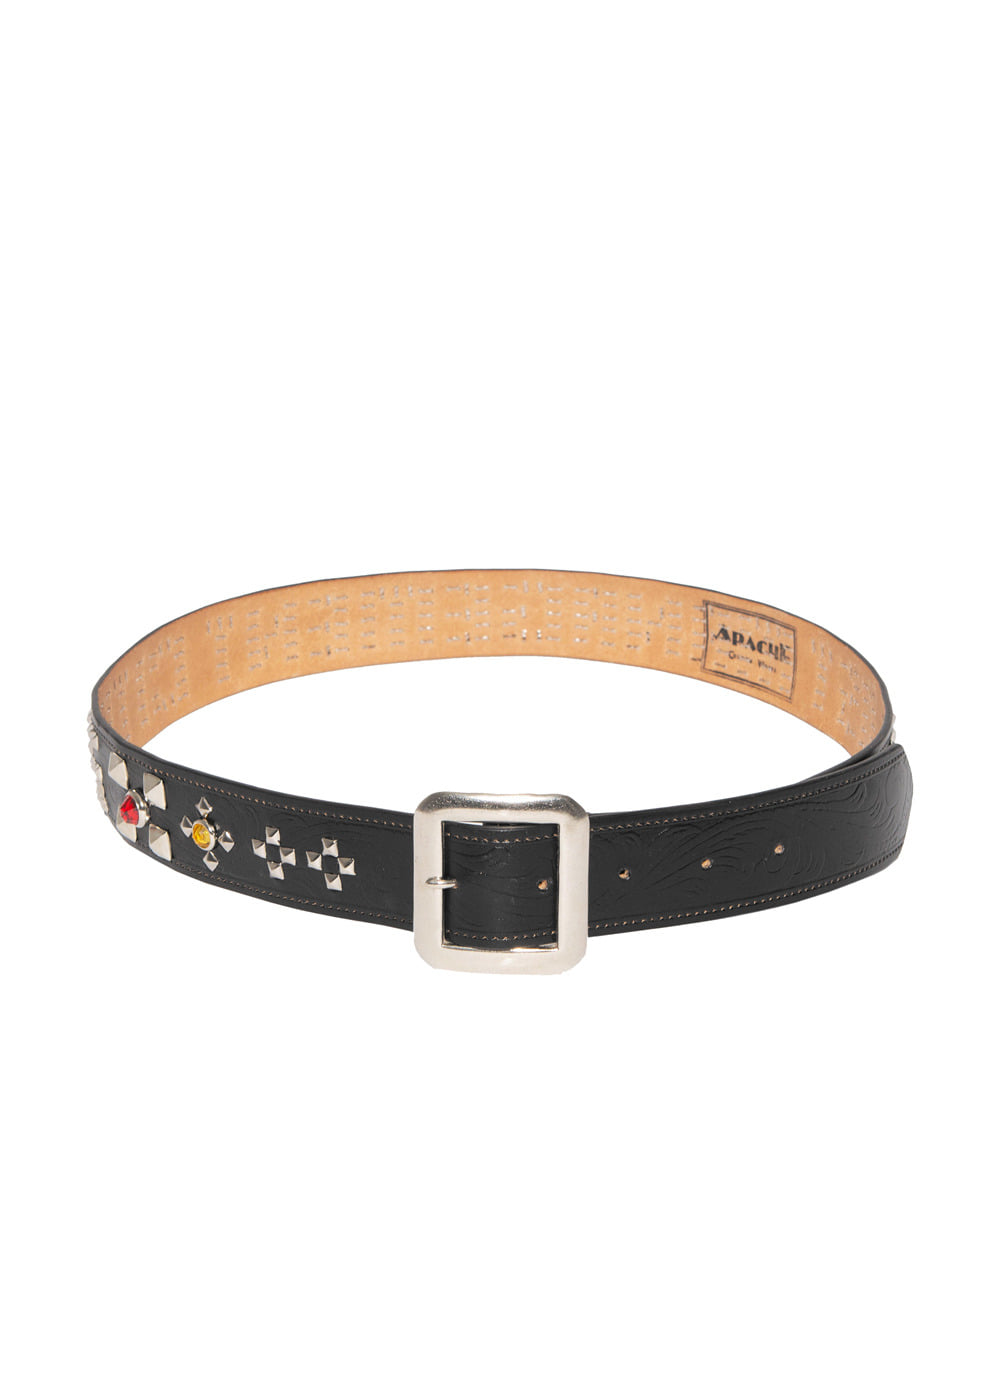 LMC APACHE WESTERN STUDDED BELT black